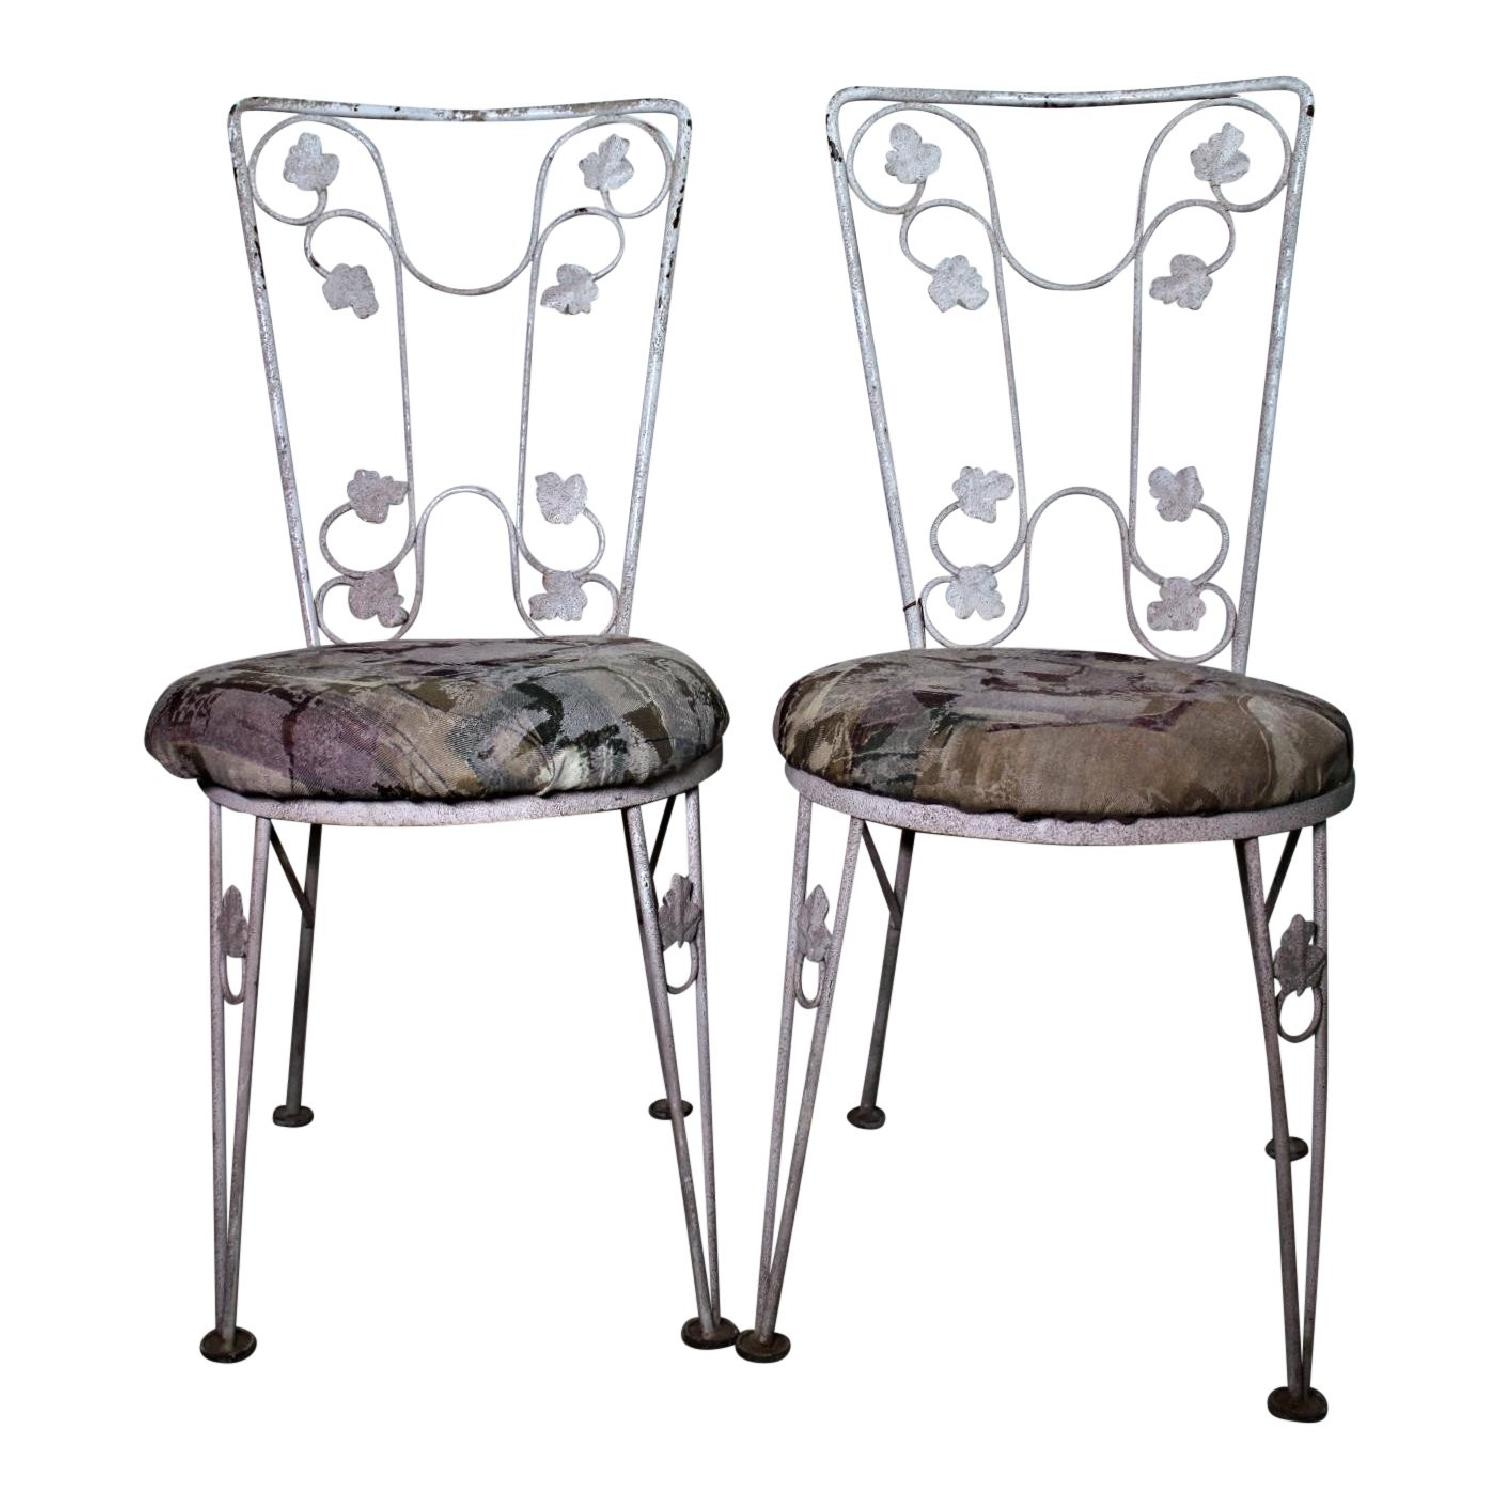 Iron Leaf Design Painted Patio Outdoor Chair